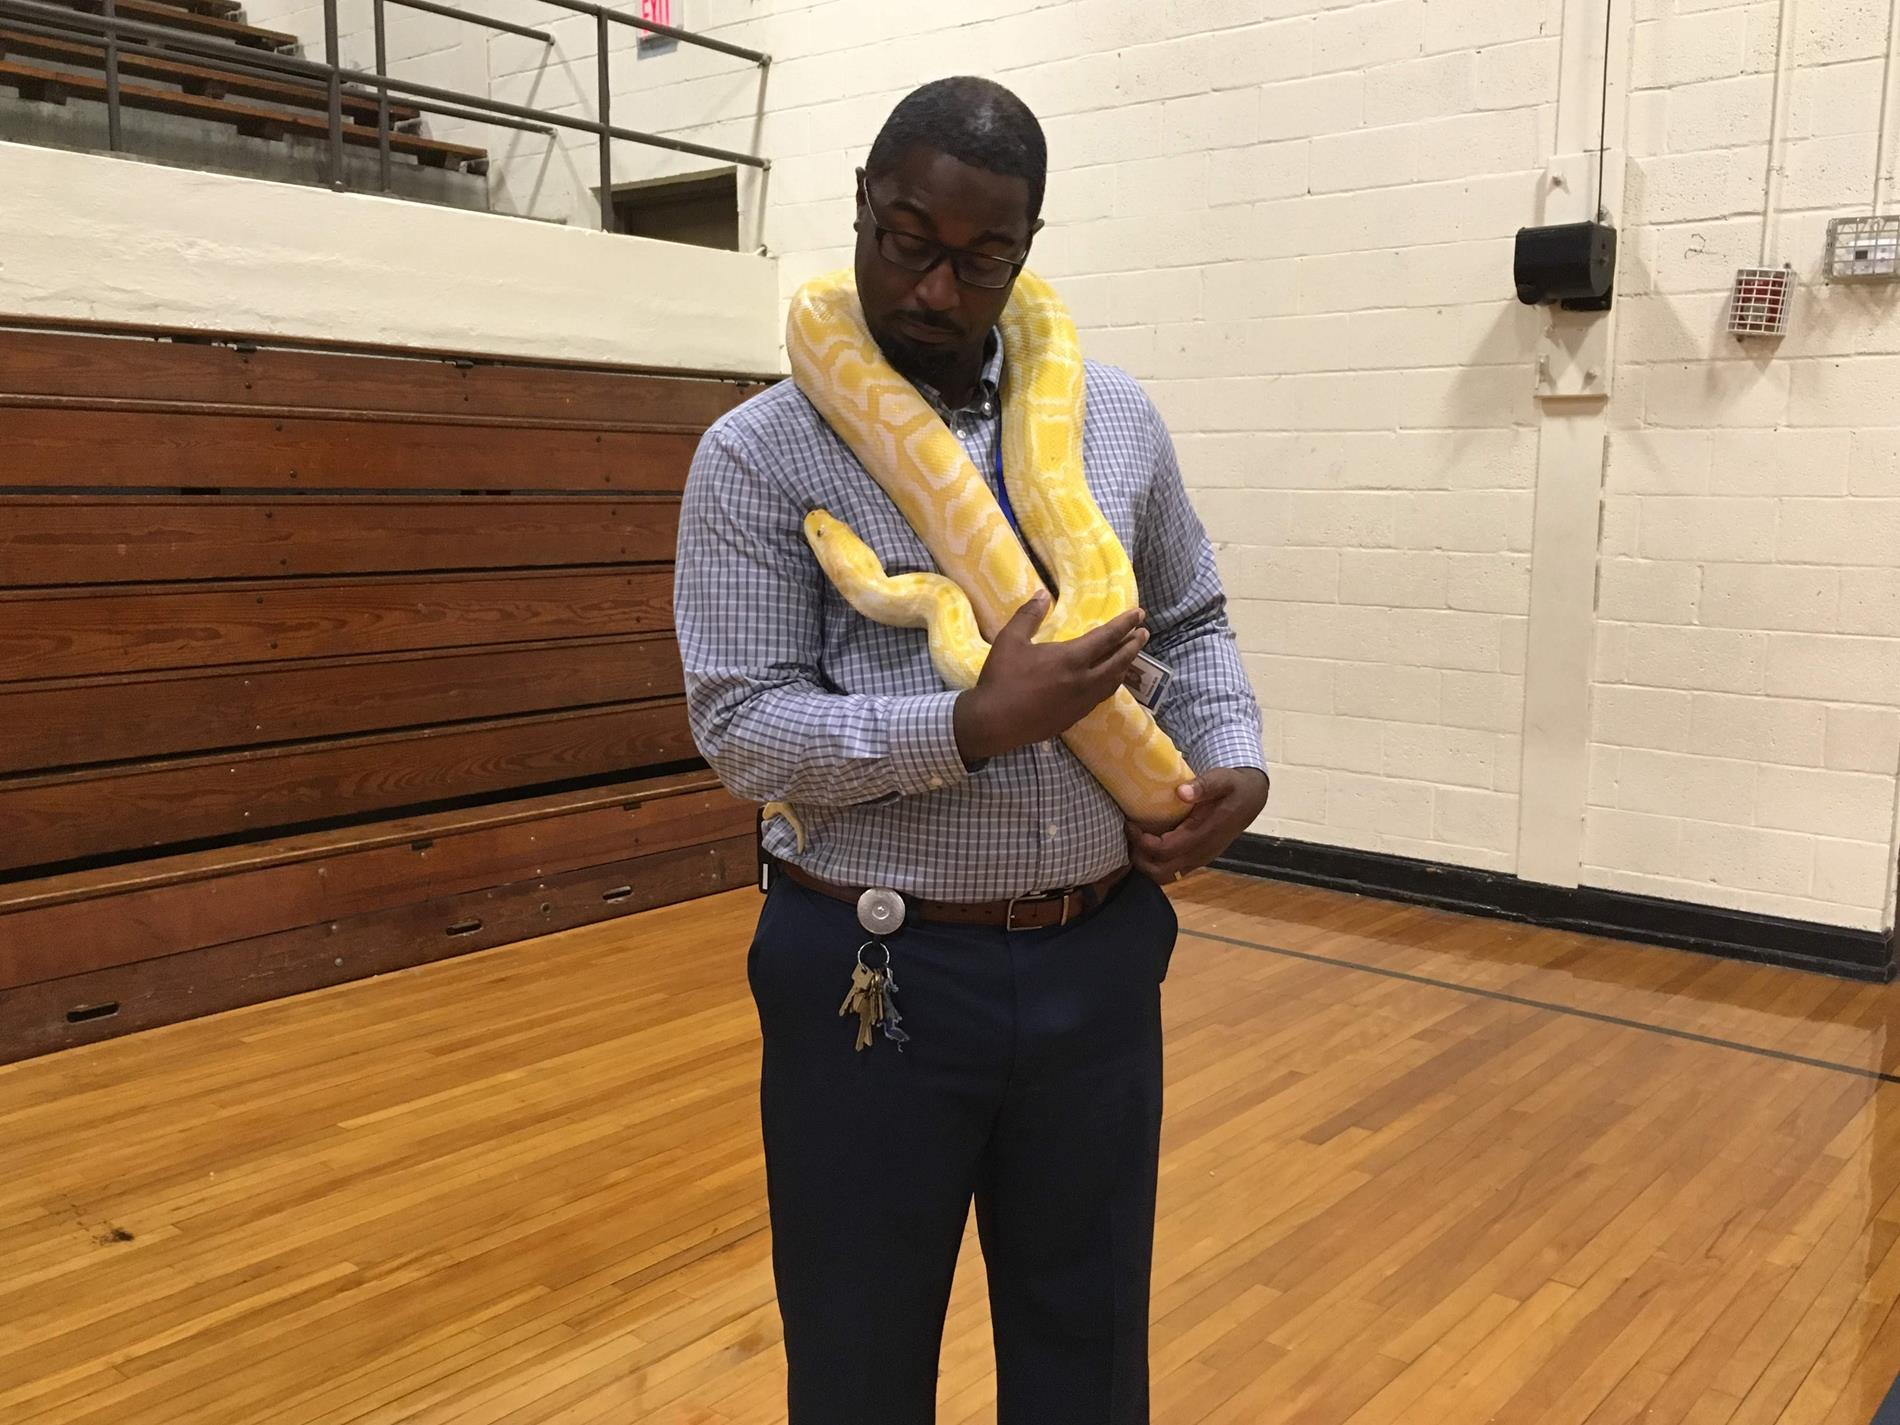 Mr. Kirk is holding a big snake